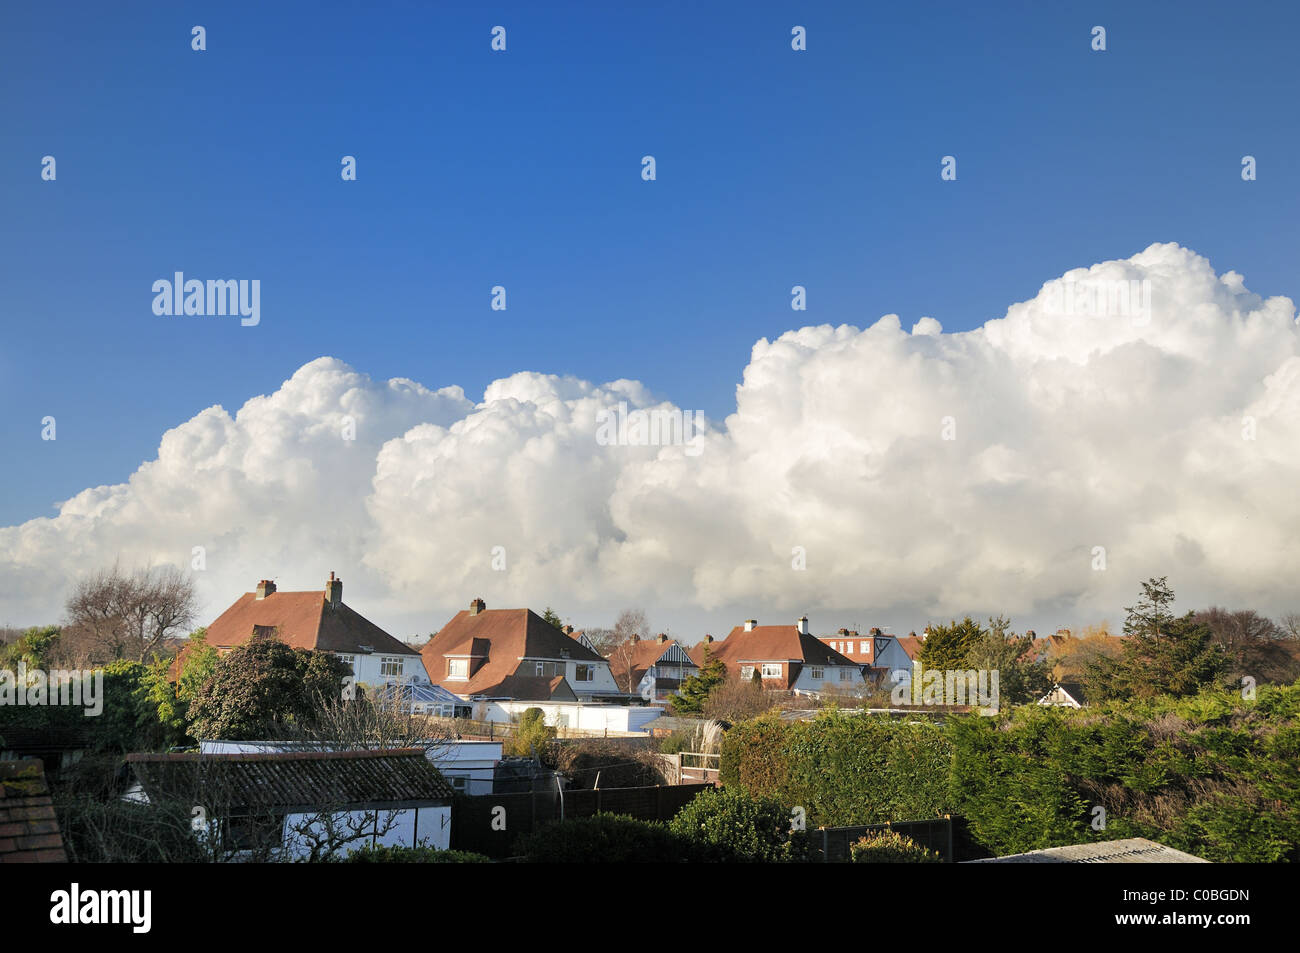 Cumulus clouds formed above English style houses - Stock Image